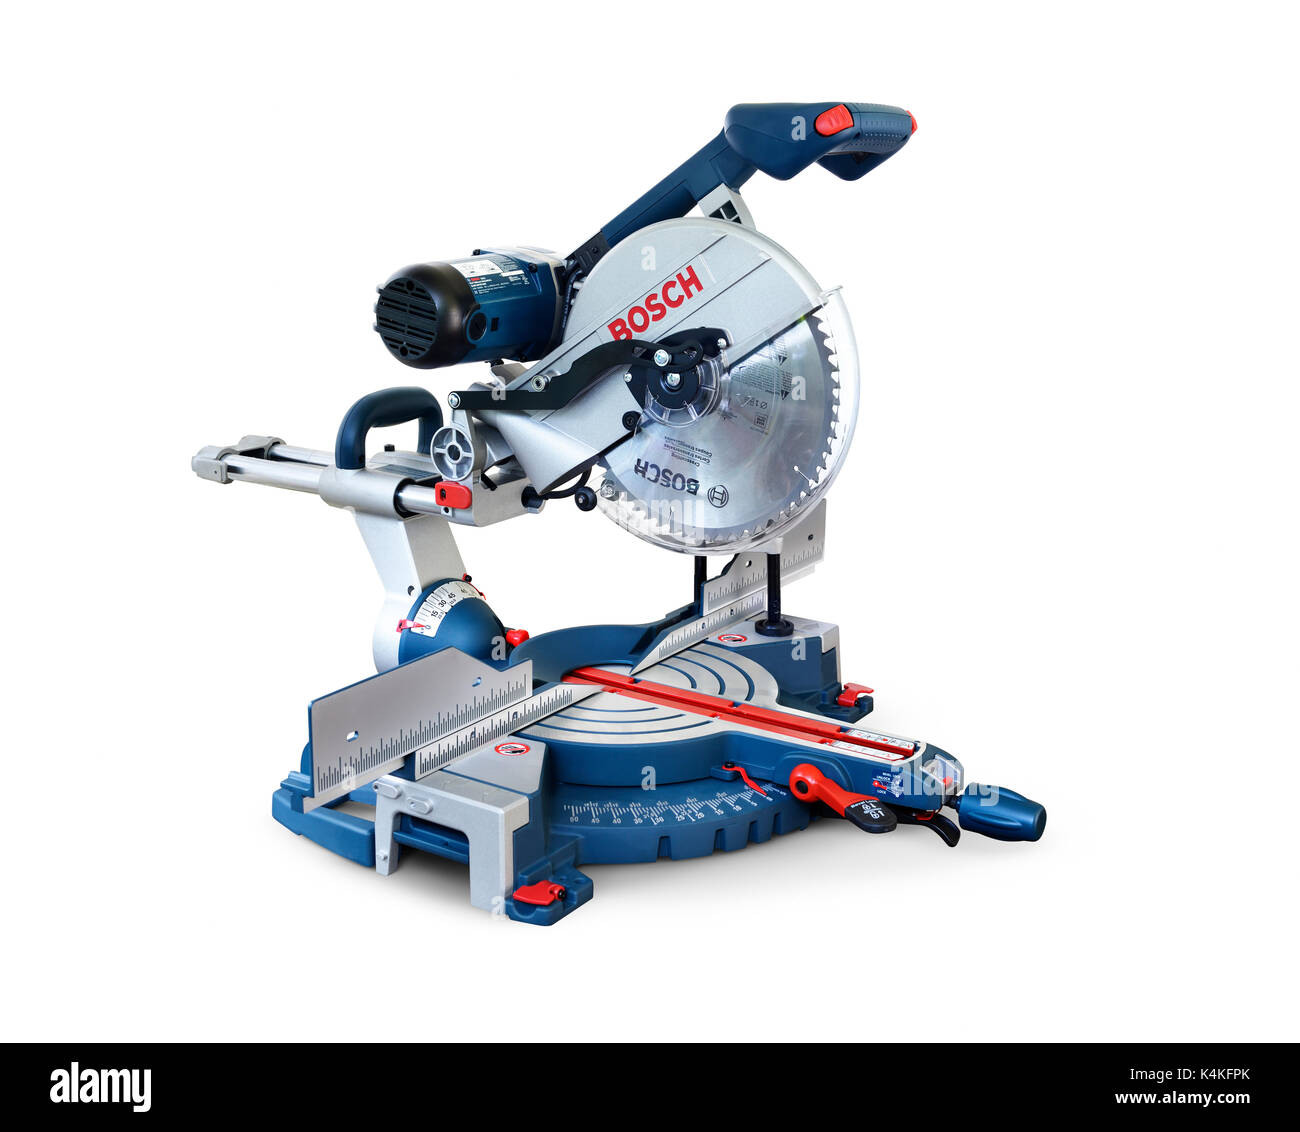 Bosch compound miter saw, mitre saw power tool - Stock Image